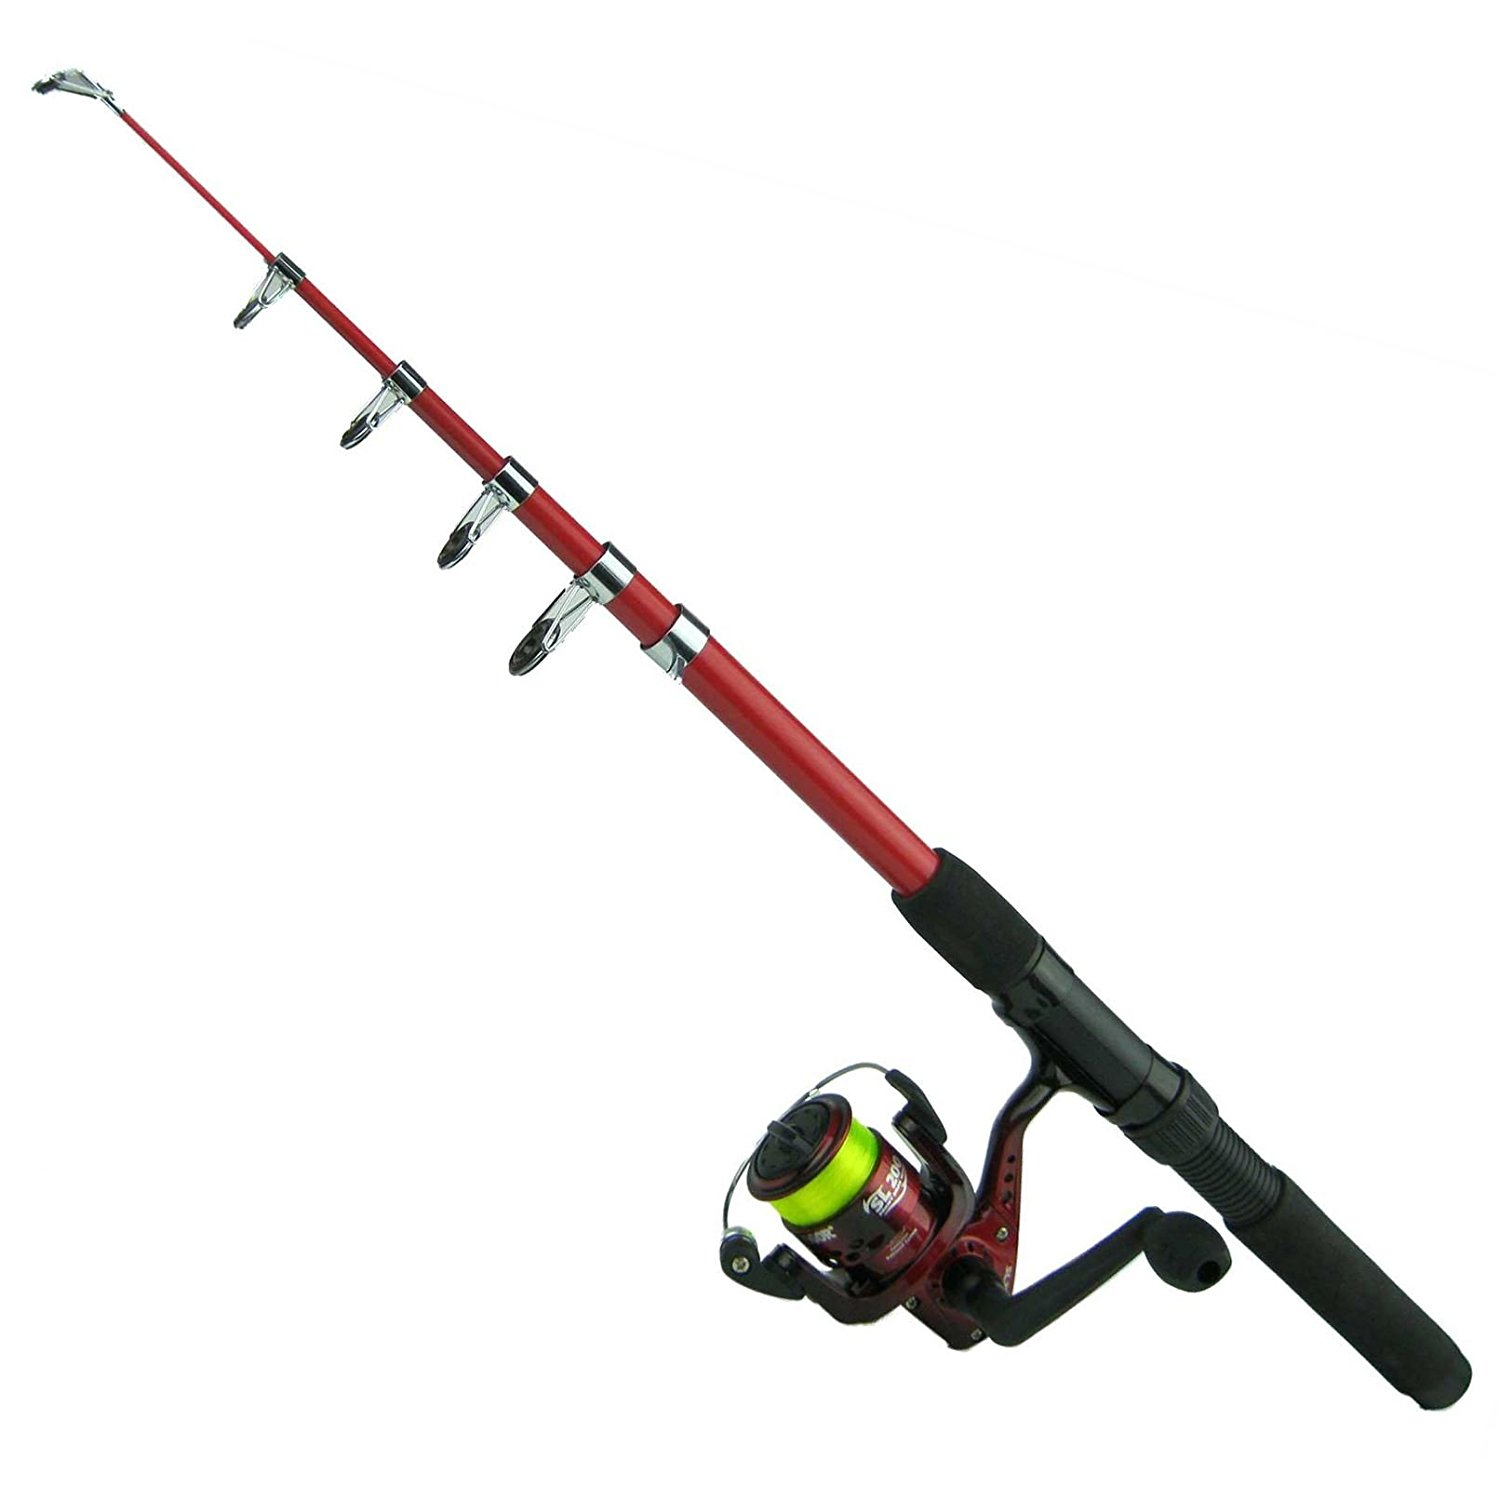 1500x1500 2m Spinning Coarse Telescopic Fishing Rod Amp Reel Combo With Sy200